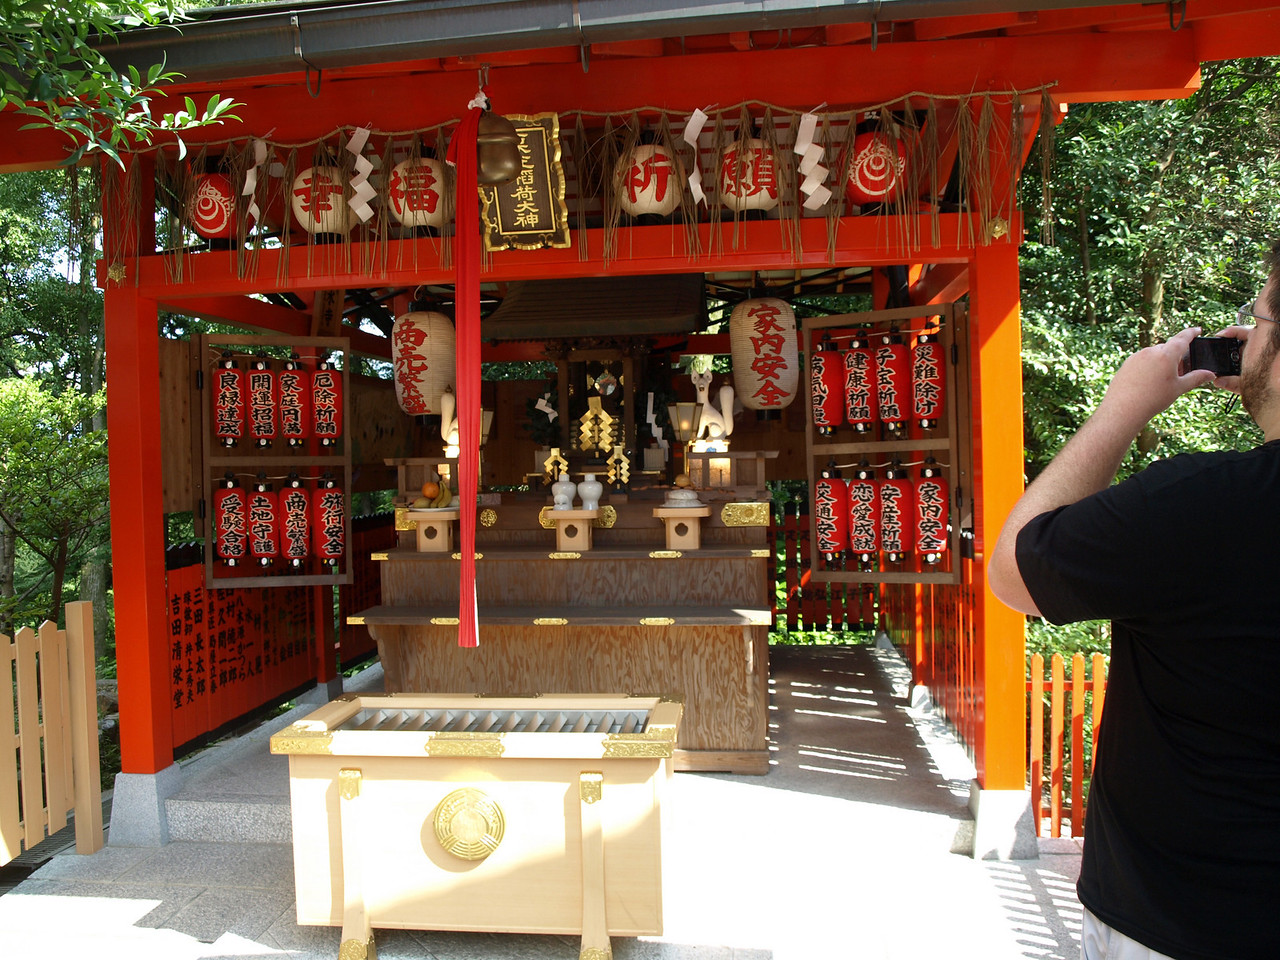 Josh taking a photo of this small shrine